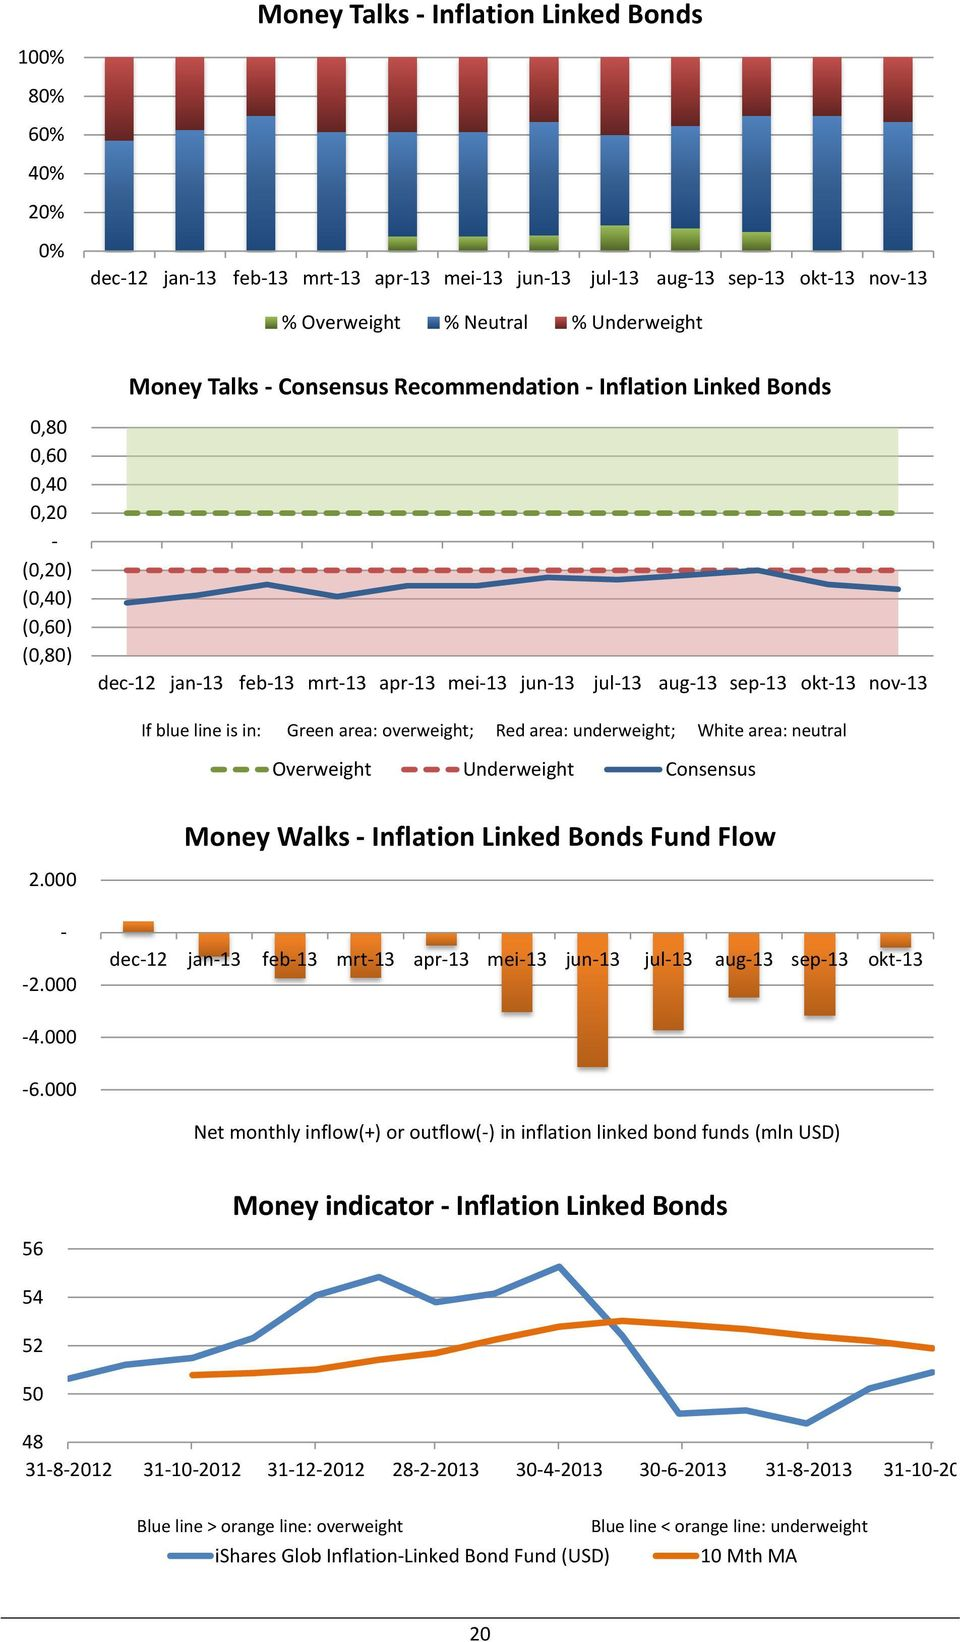 000 Money Walks Inflation Linked Bonds Fund Flow dec12 jan13 feb13 mrt13 apr13 mei13 jun13 jul13 aug13 sep13 okt13 4.000 6.